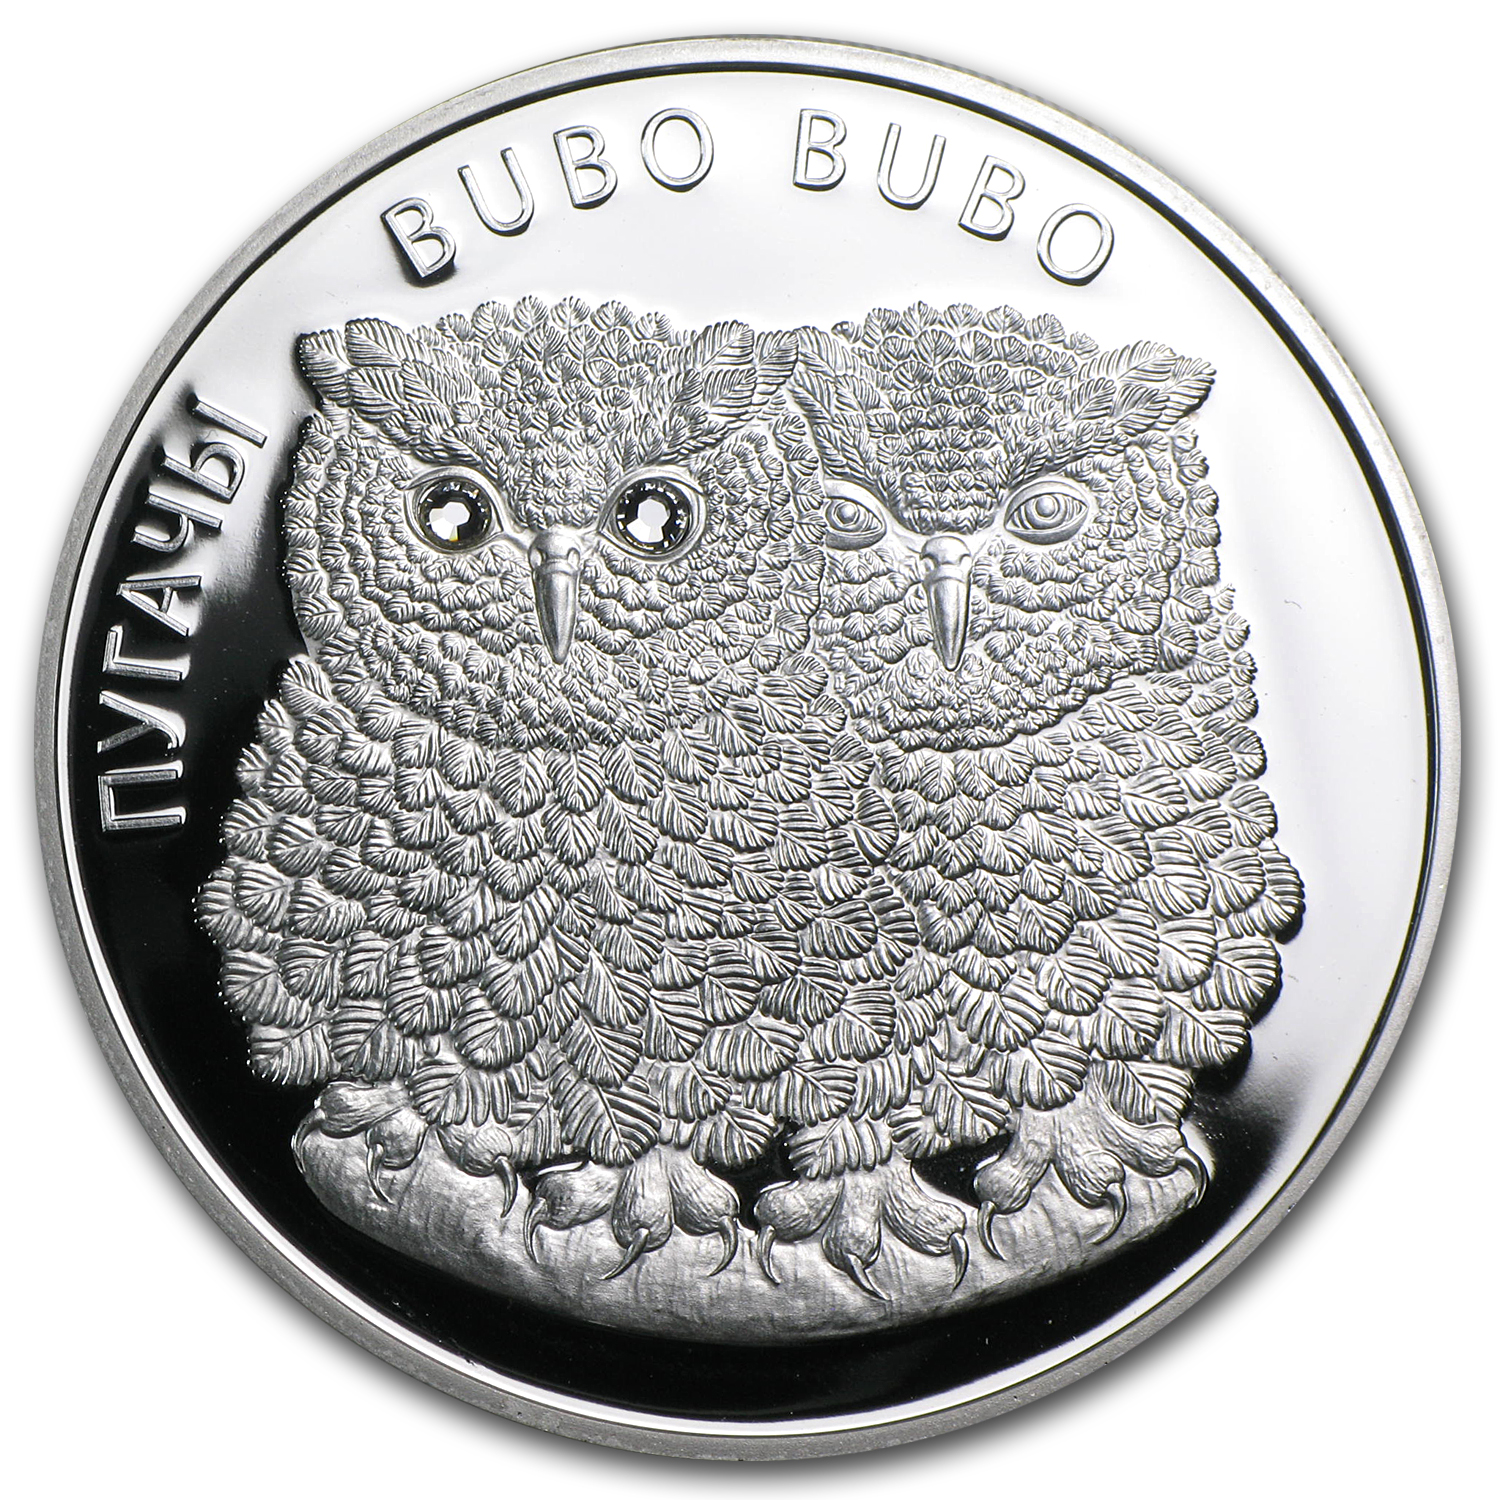 2010 Belarus Proof Silver Eagle Owls Bubo Bubo